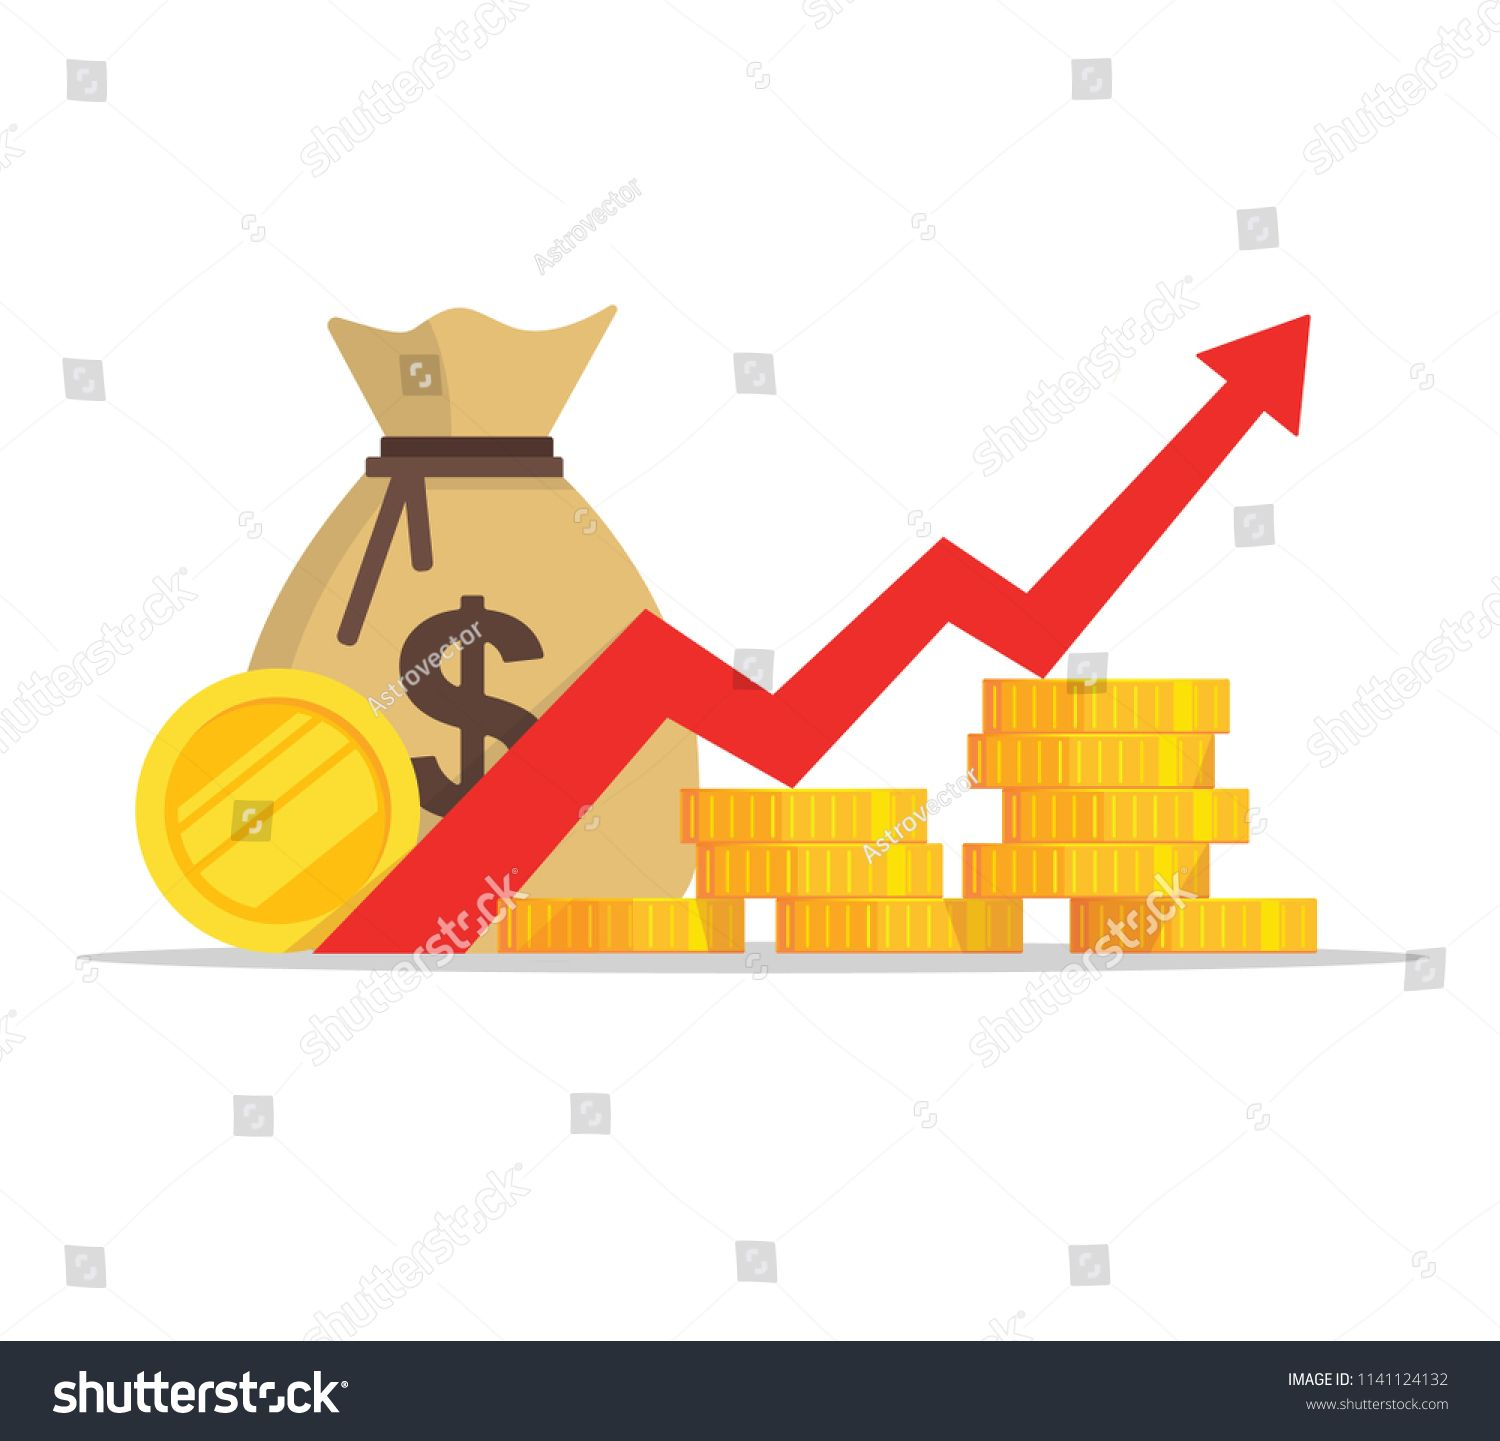 New Flat Cartoon Pile Of Cash Profit Benefits Money Or Budget Rising Graph Arrow Up Business Success Concept Economic Success Business Investing Budgeting